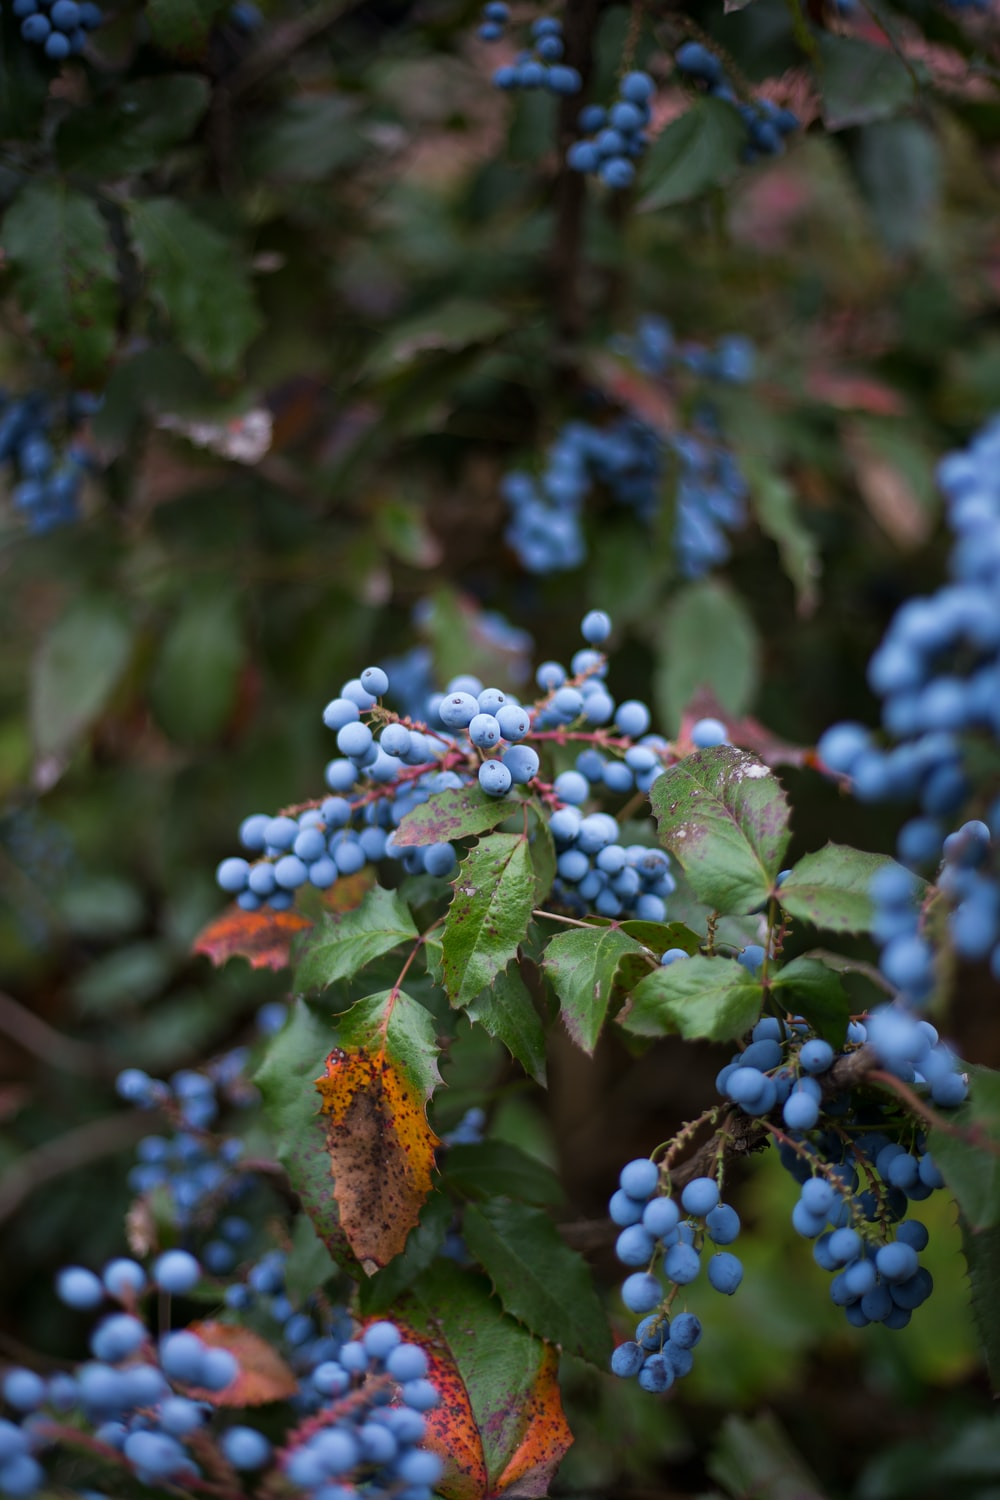 selective focus photography of blue fruits